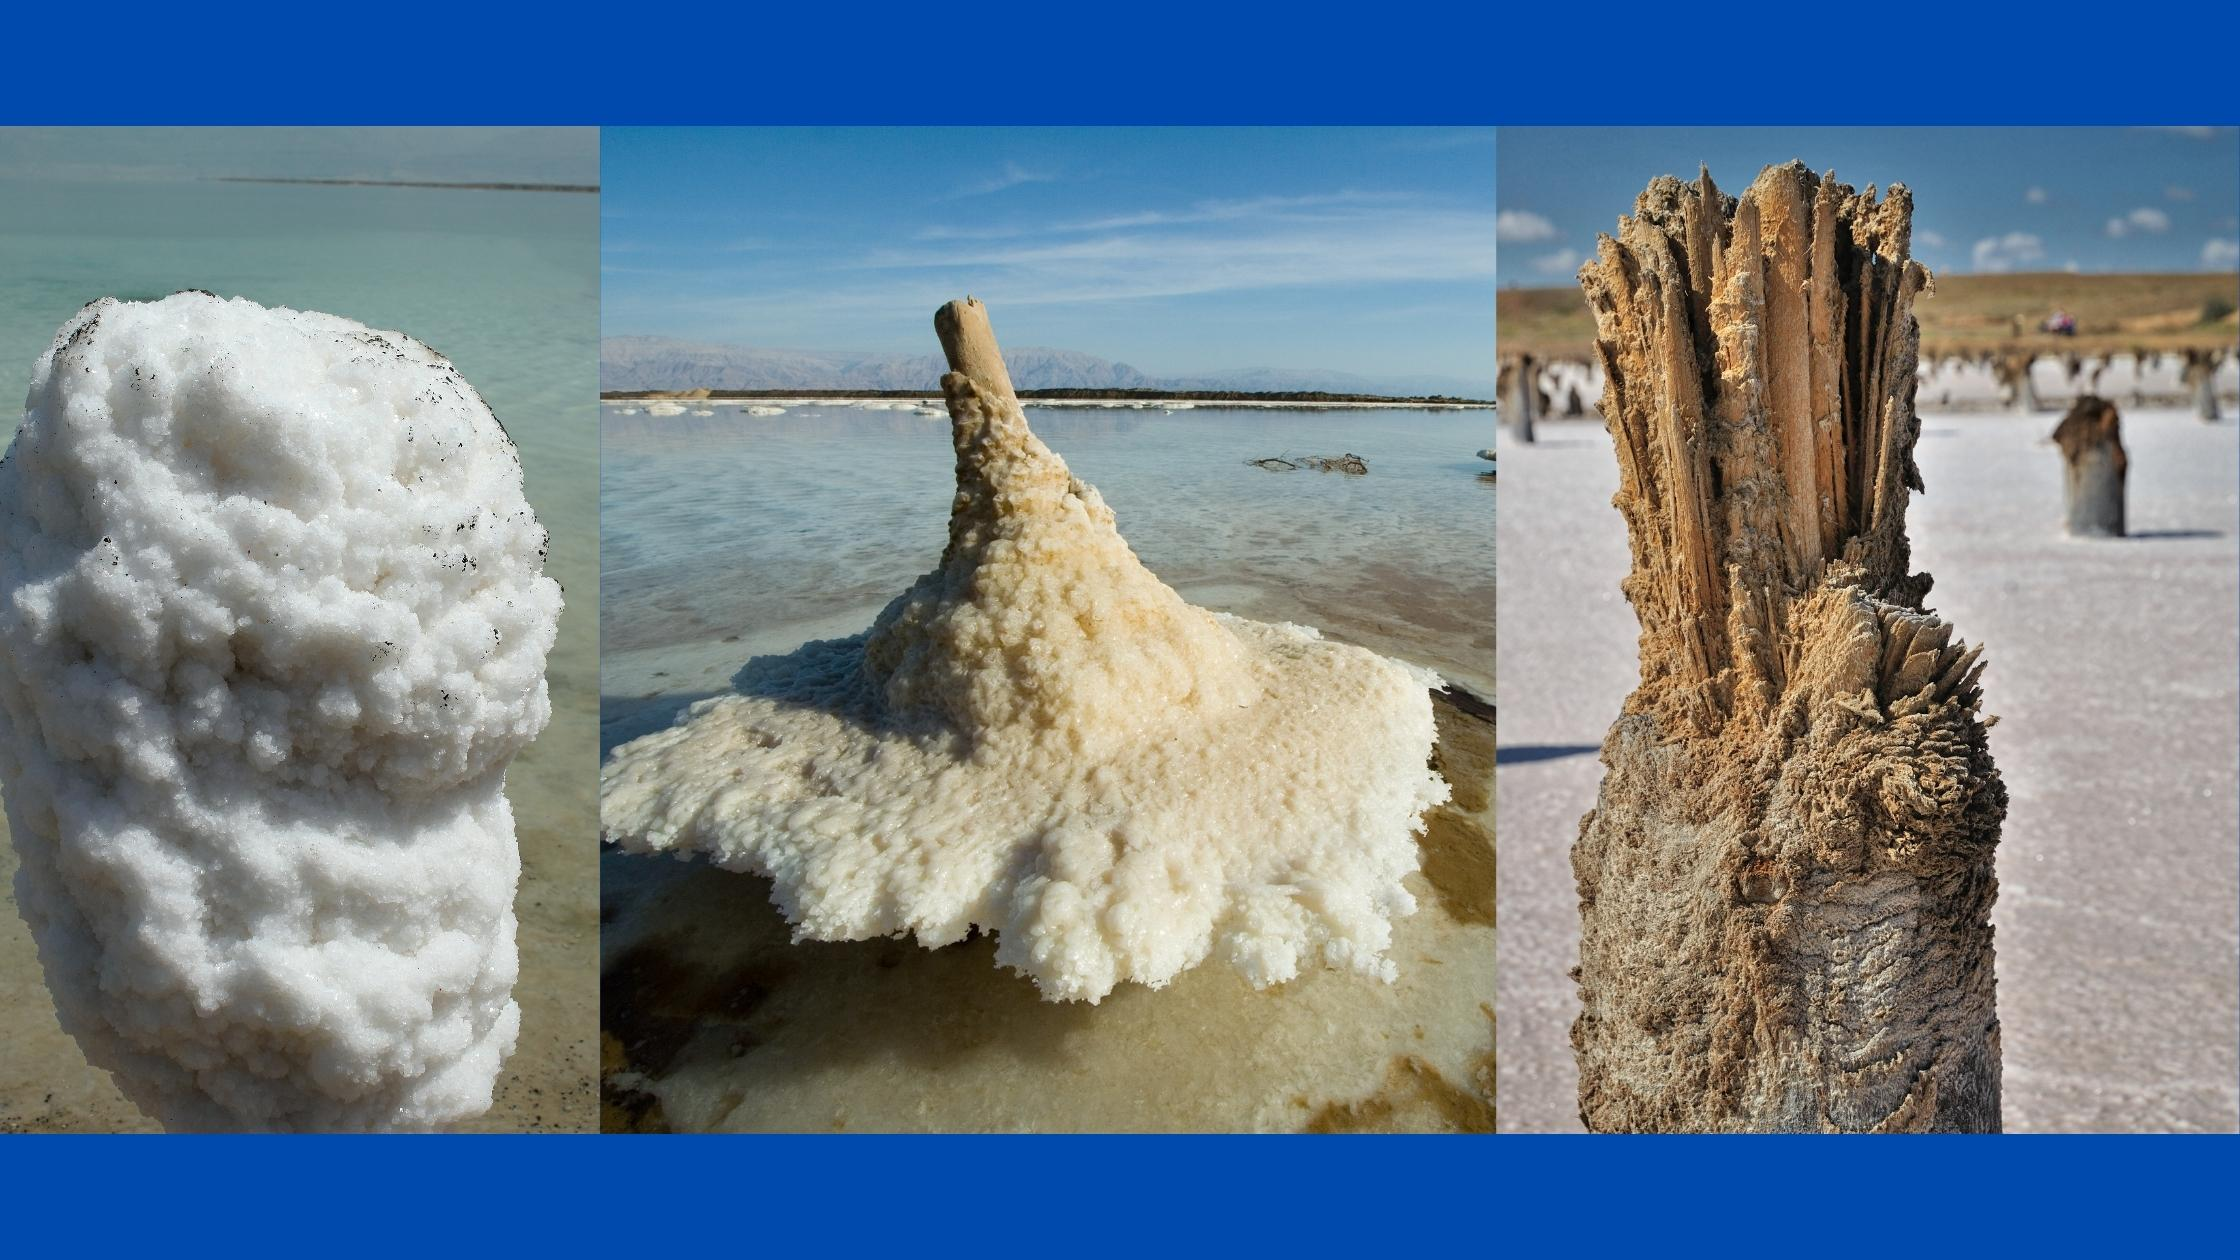 large chunks of salt on the shore of the dead sea in israel